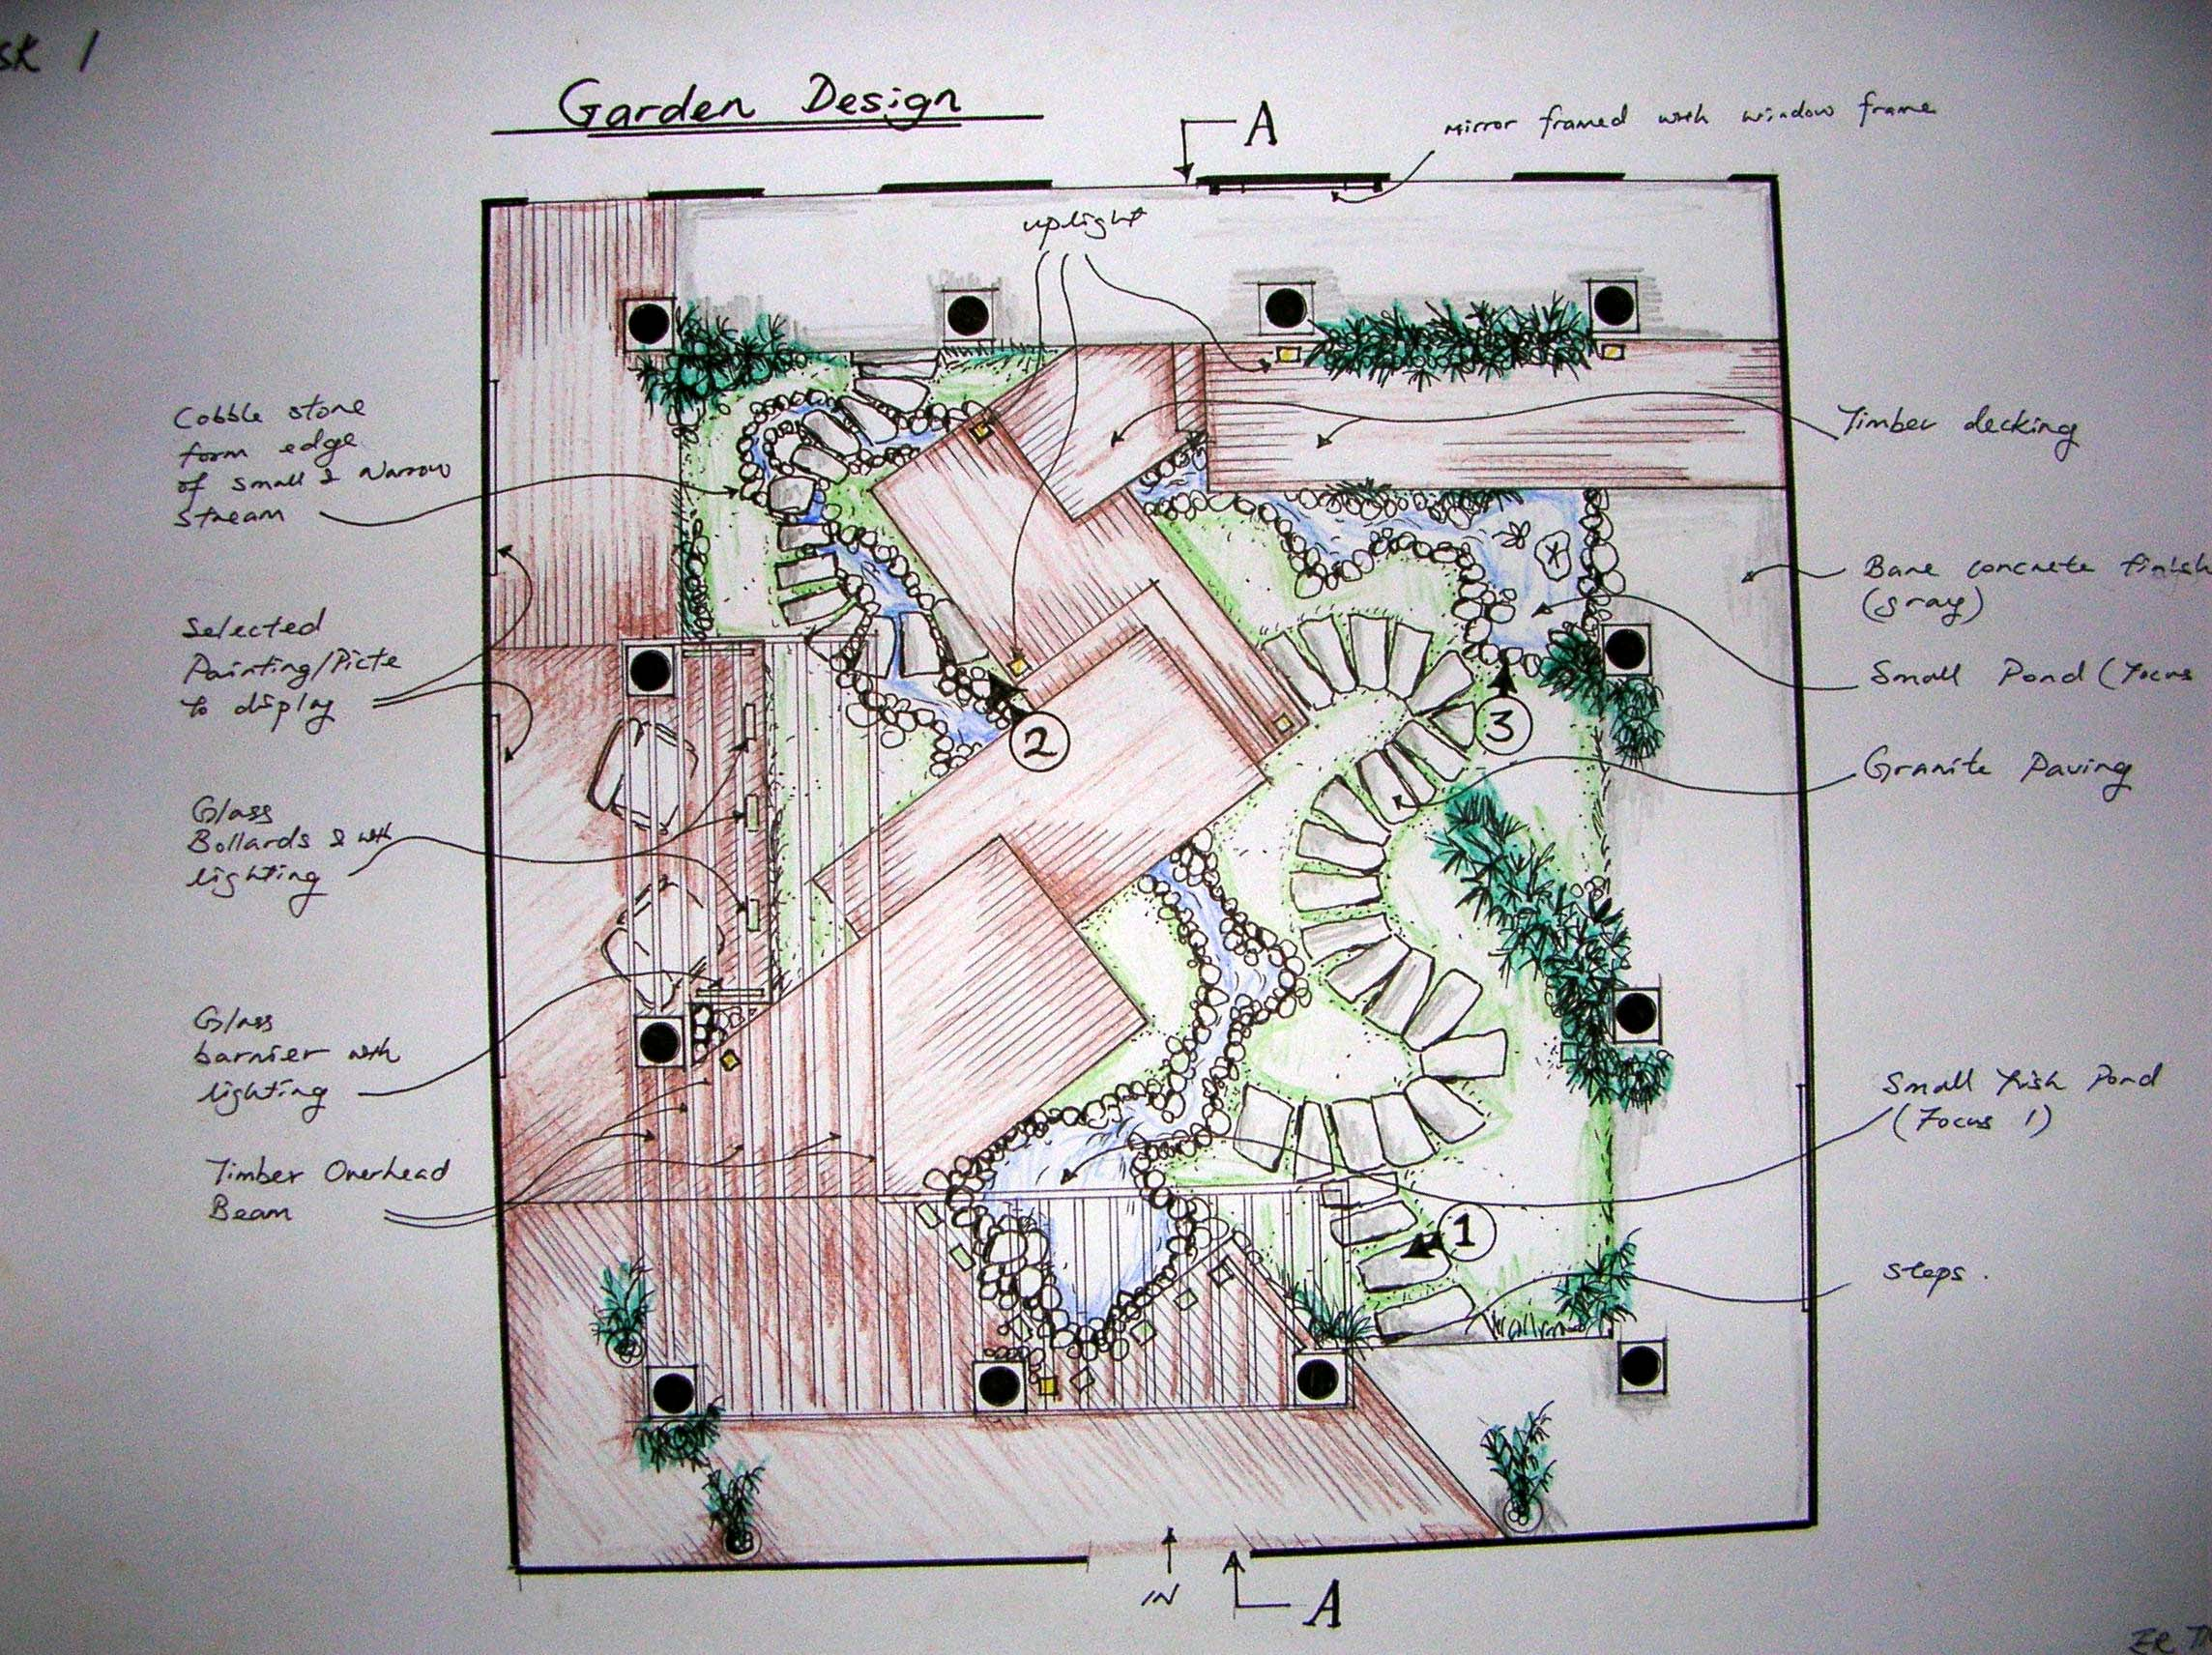 Landscape wk by er t c at for Garden designs and layouts